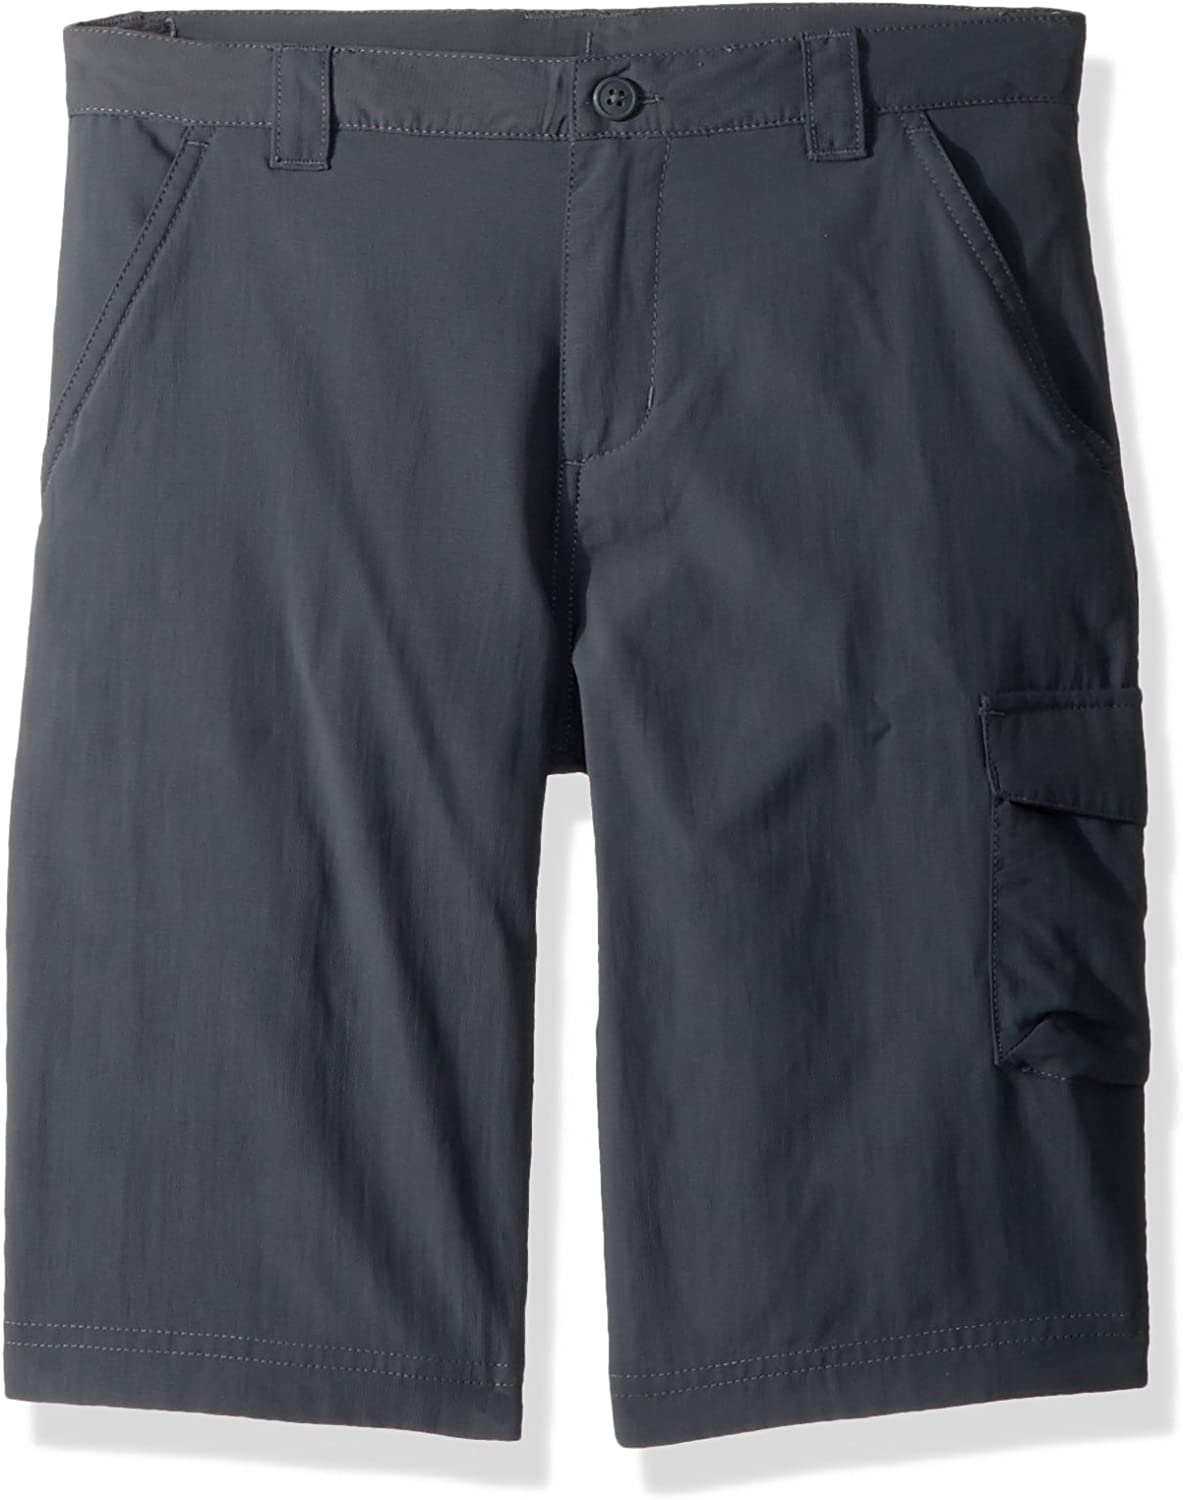 Columbia Youth Boys' Silver Ridge III Short, Breathable, UPF 30 Sun Protection